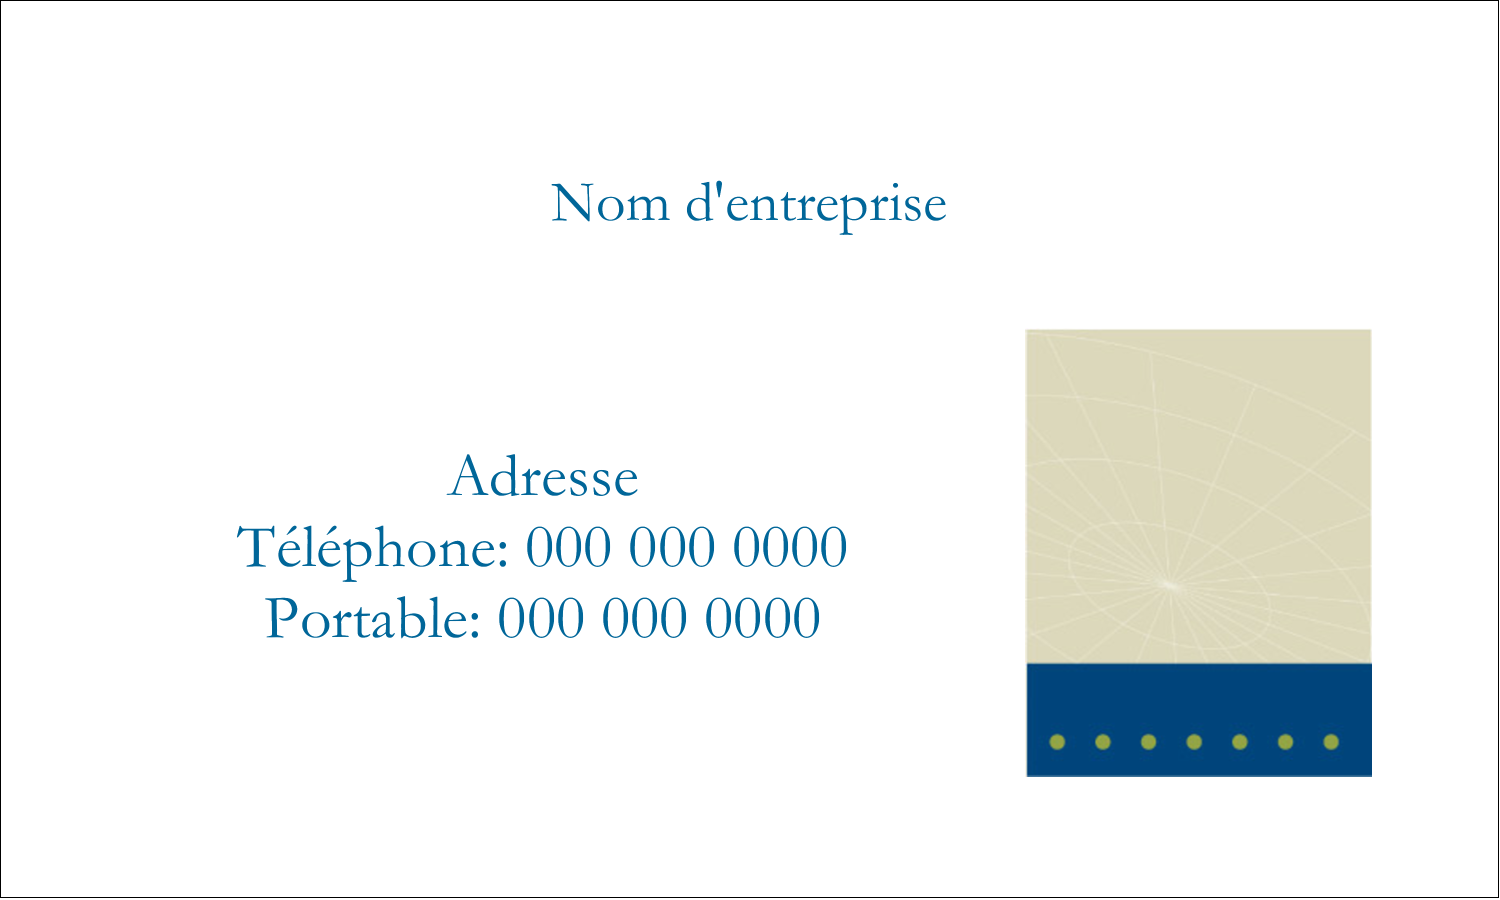 "2"" x 3½"" Cartes d'affaires - Tech Comm"